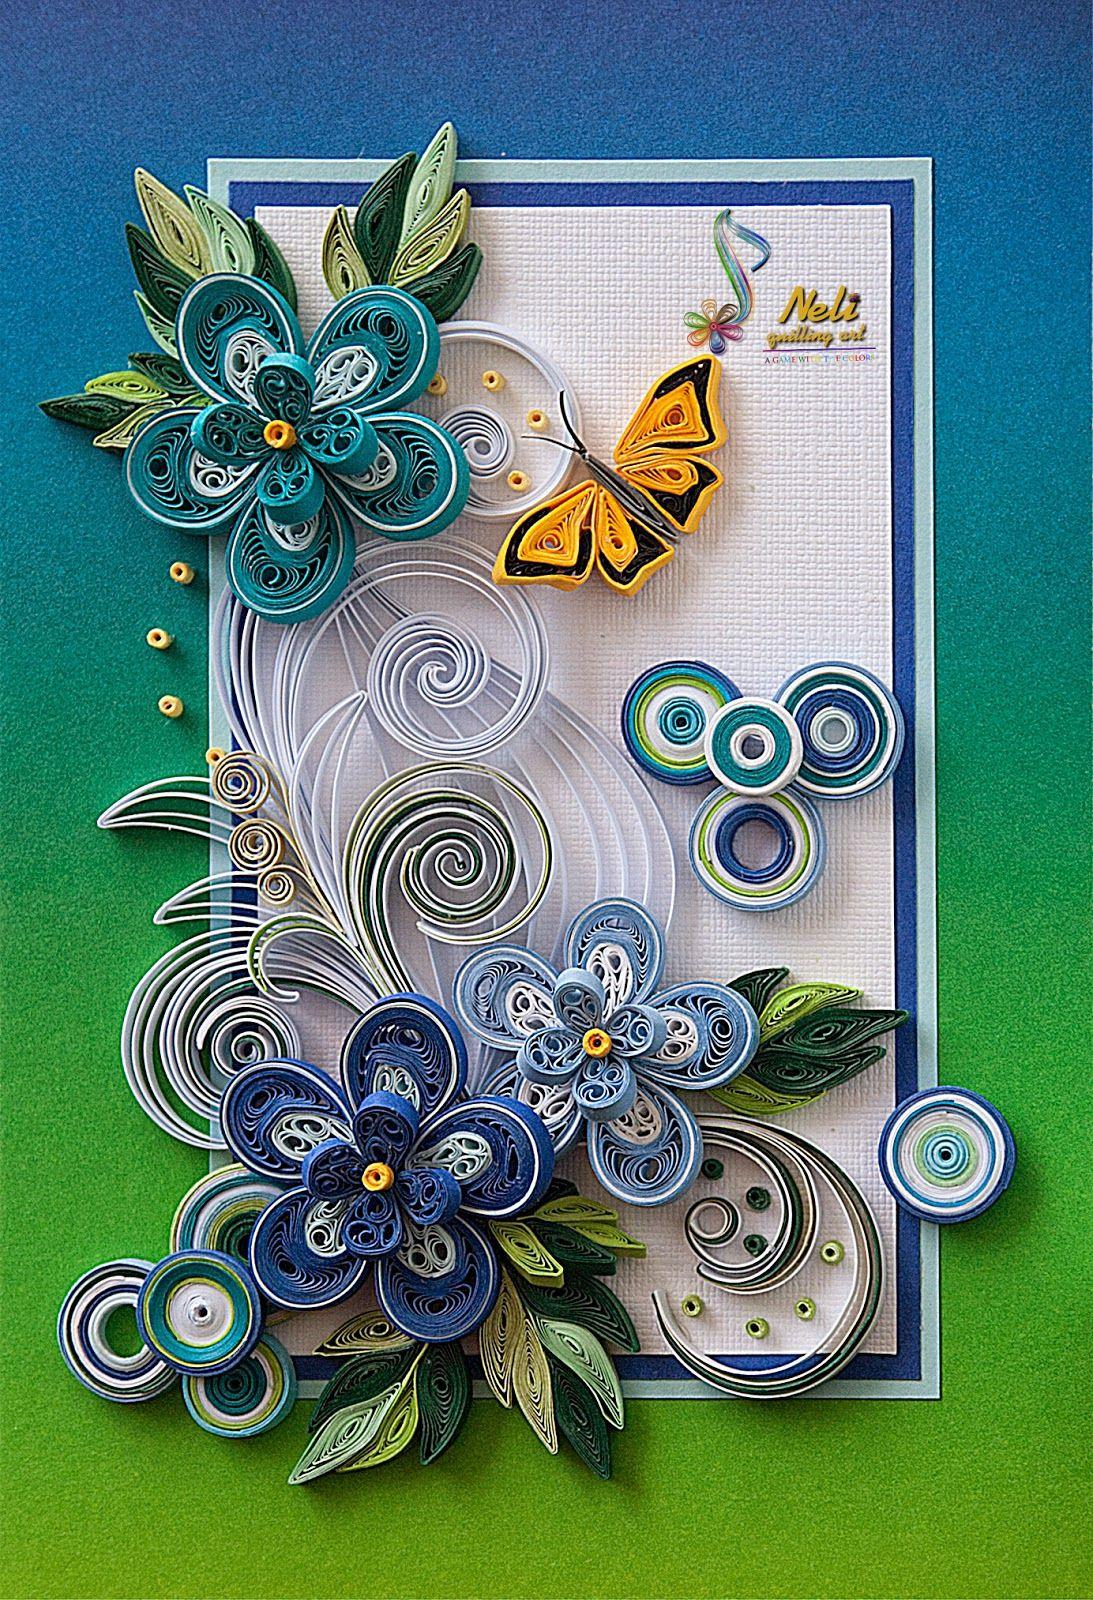 Nelika neli quilling paper quilling cards quilling